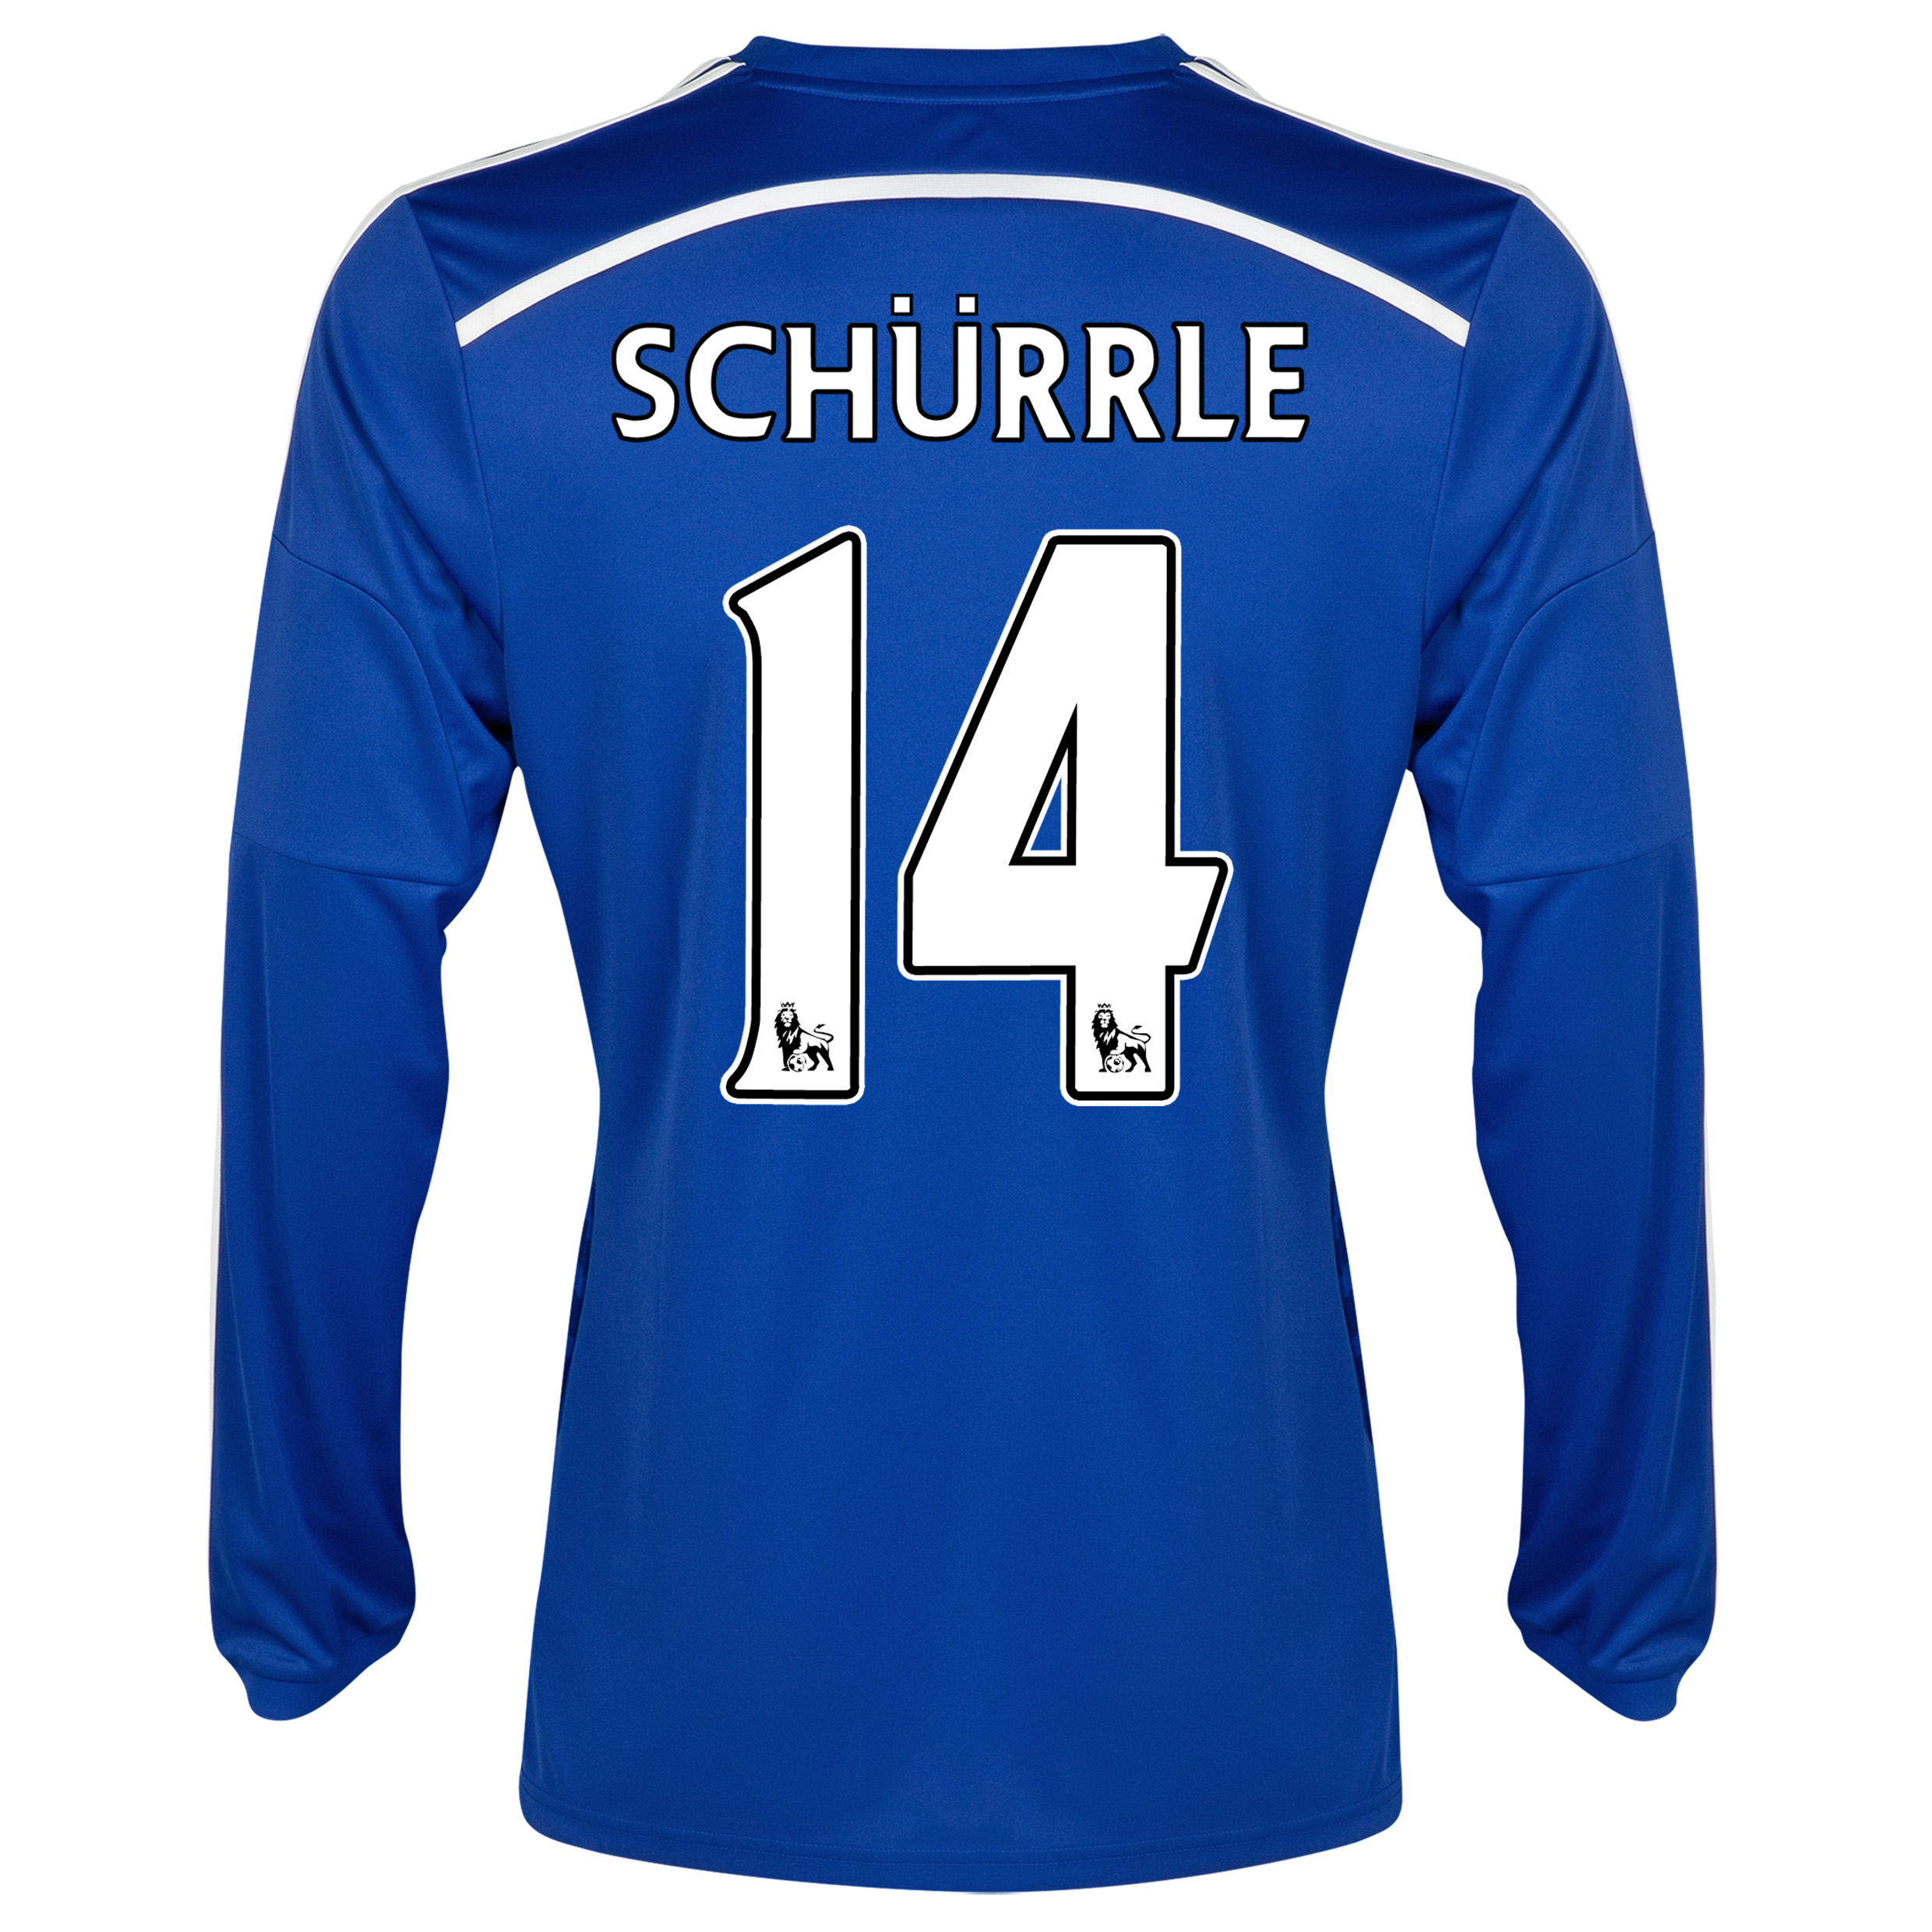 Chelsea Home Shirt 2014/15 - Long Sleeve Blue with Schurrle 14 printing